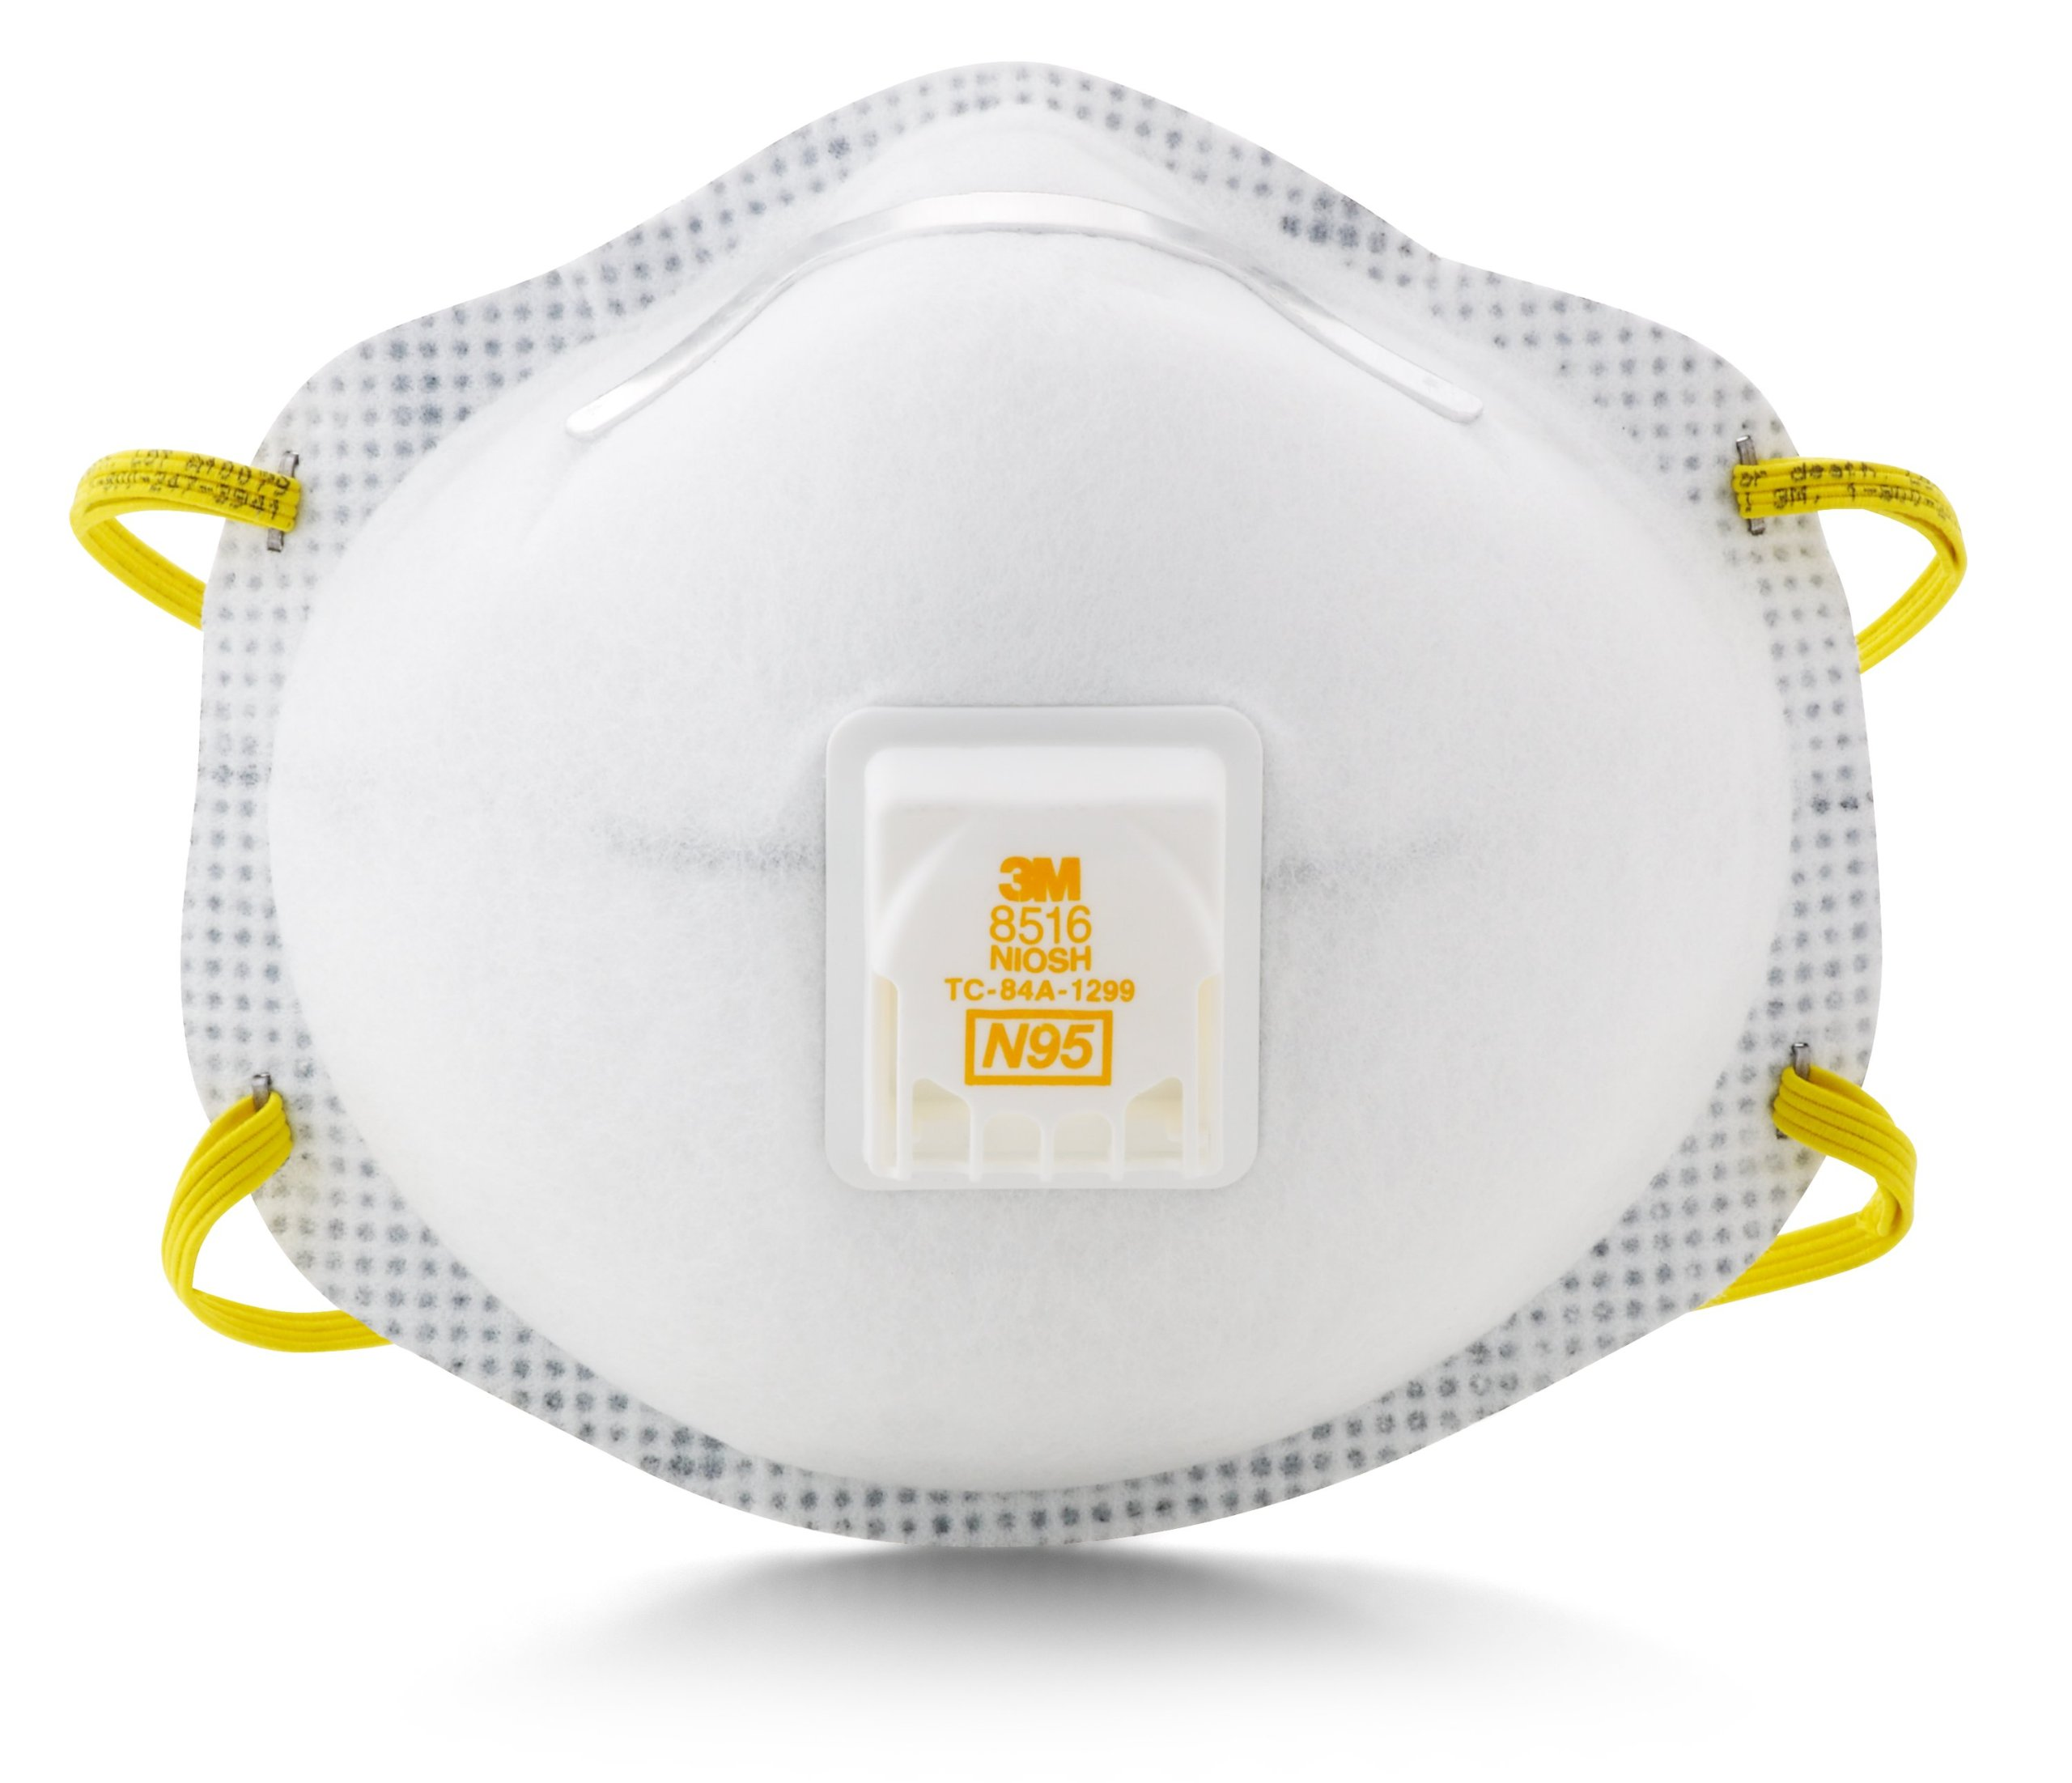 3M Particulate Respirator 8516, N95, with Nuisance Level Acid Gas Relief (Pack of 10)